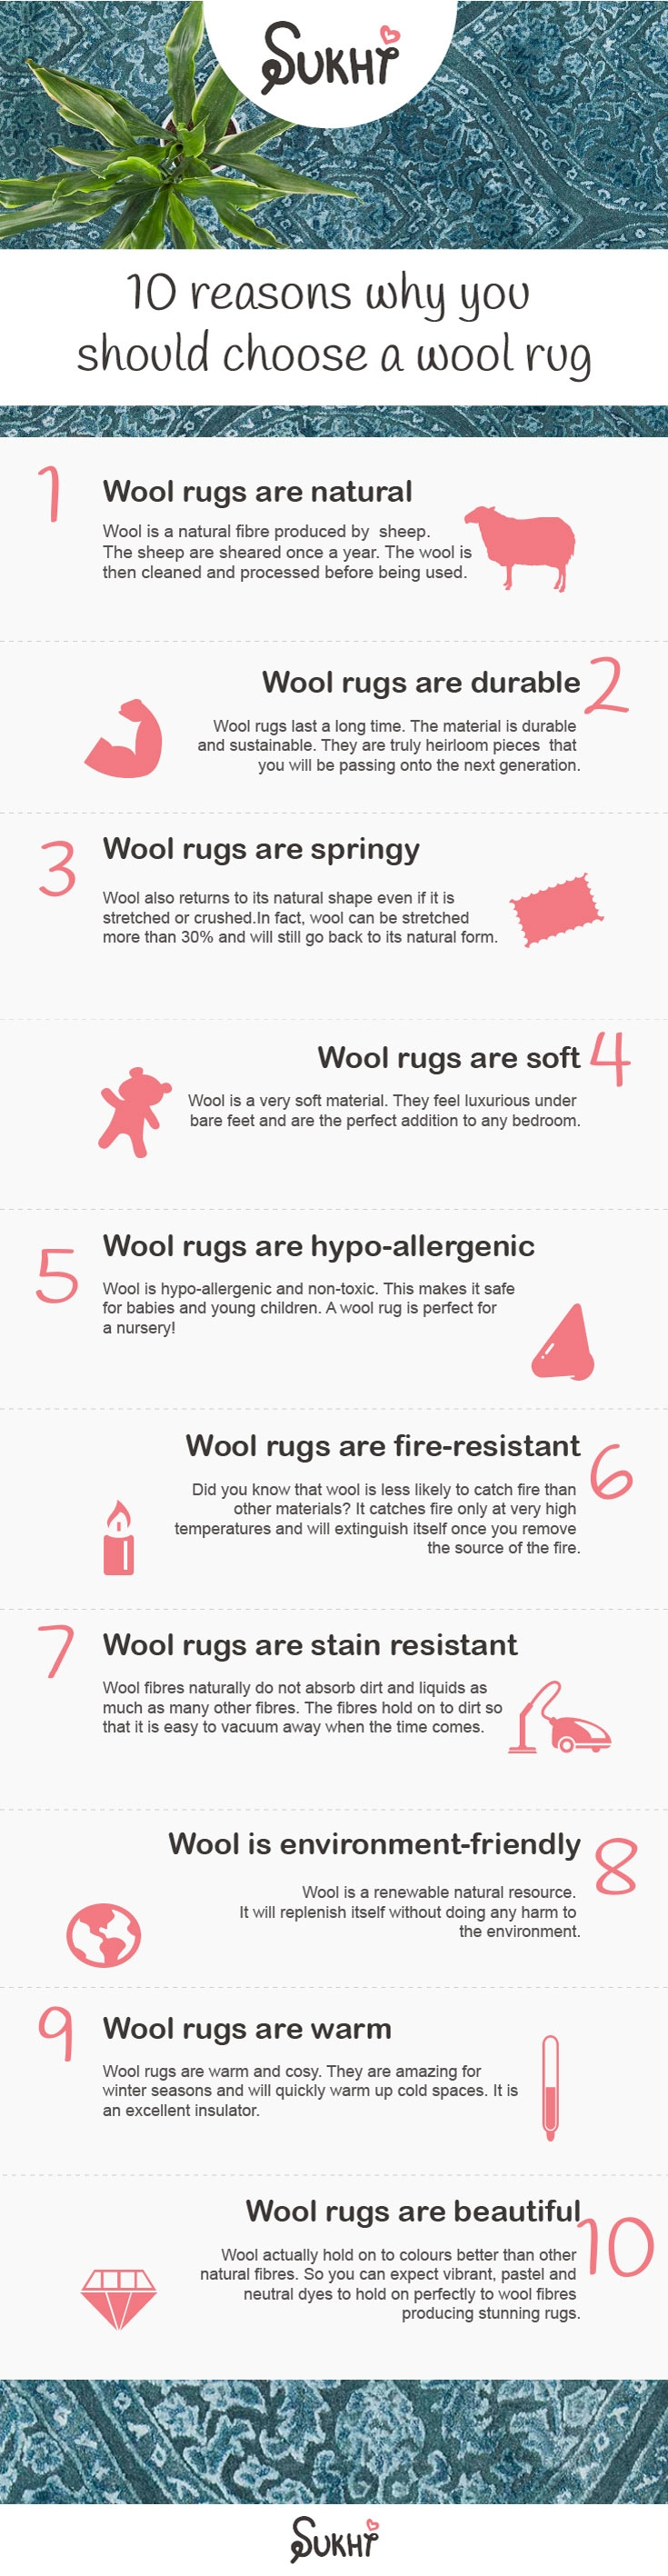 10-reasons-why-you-should-choose-a-wool-rug